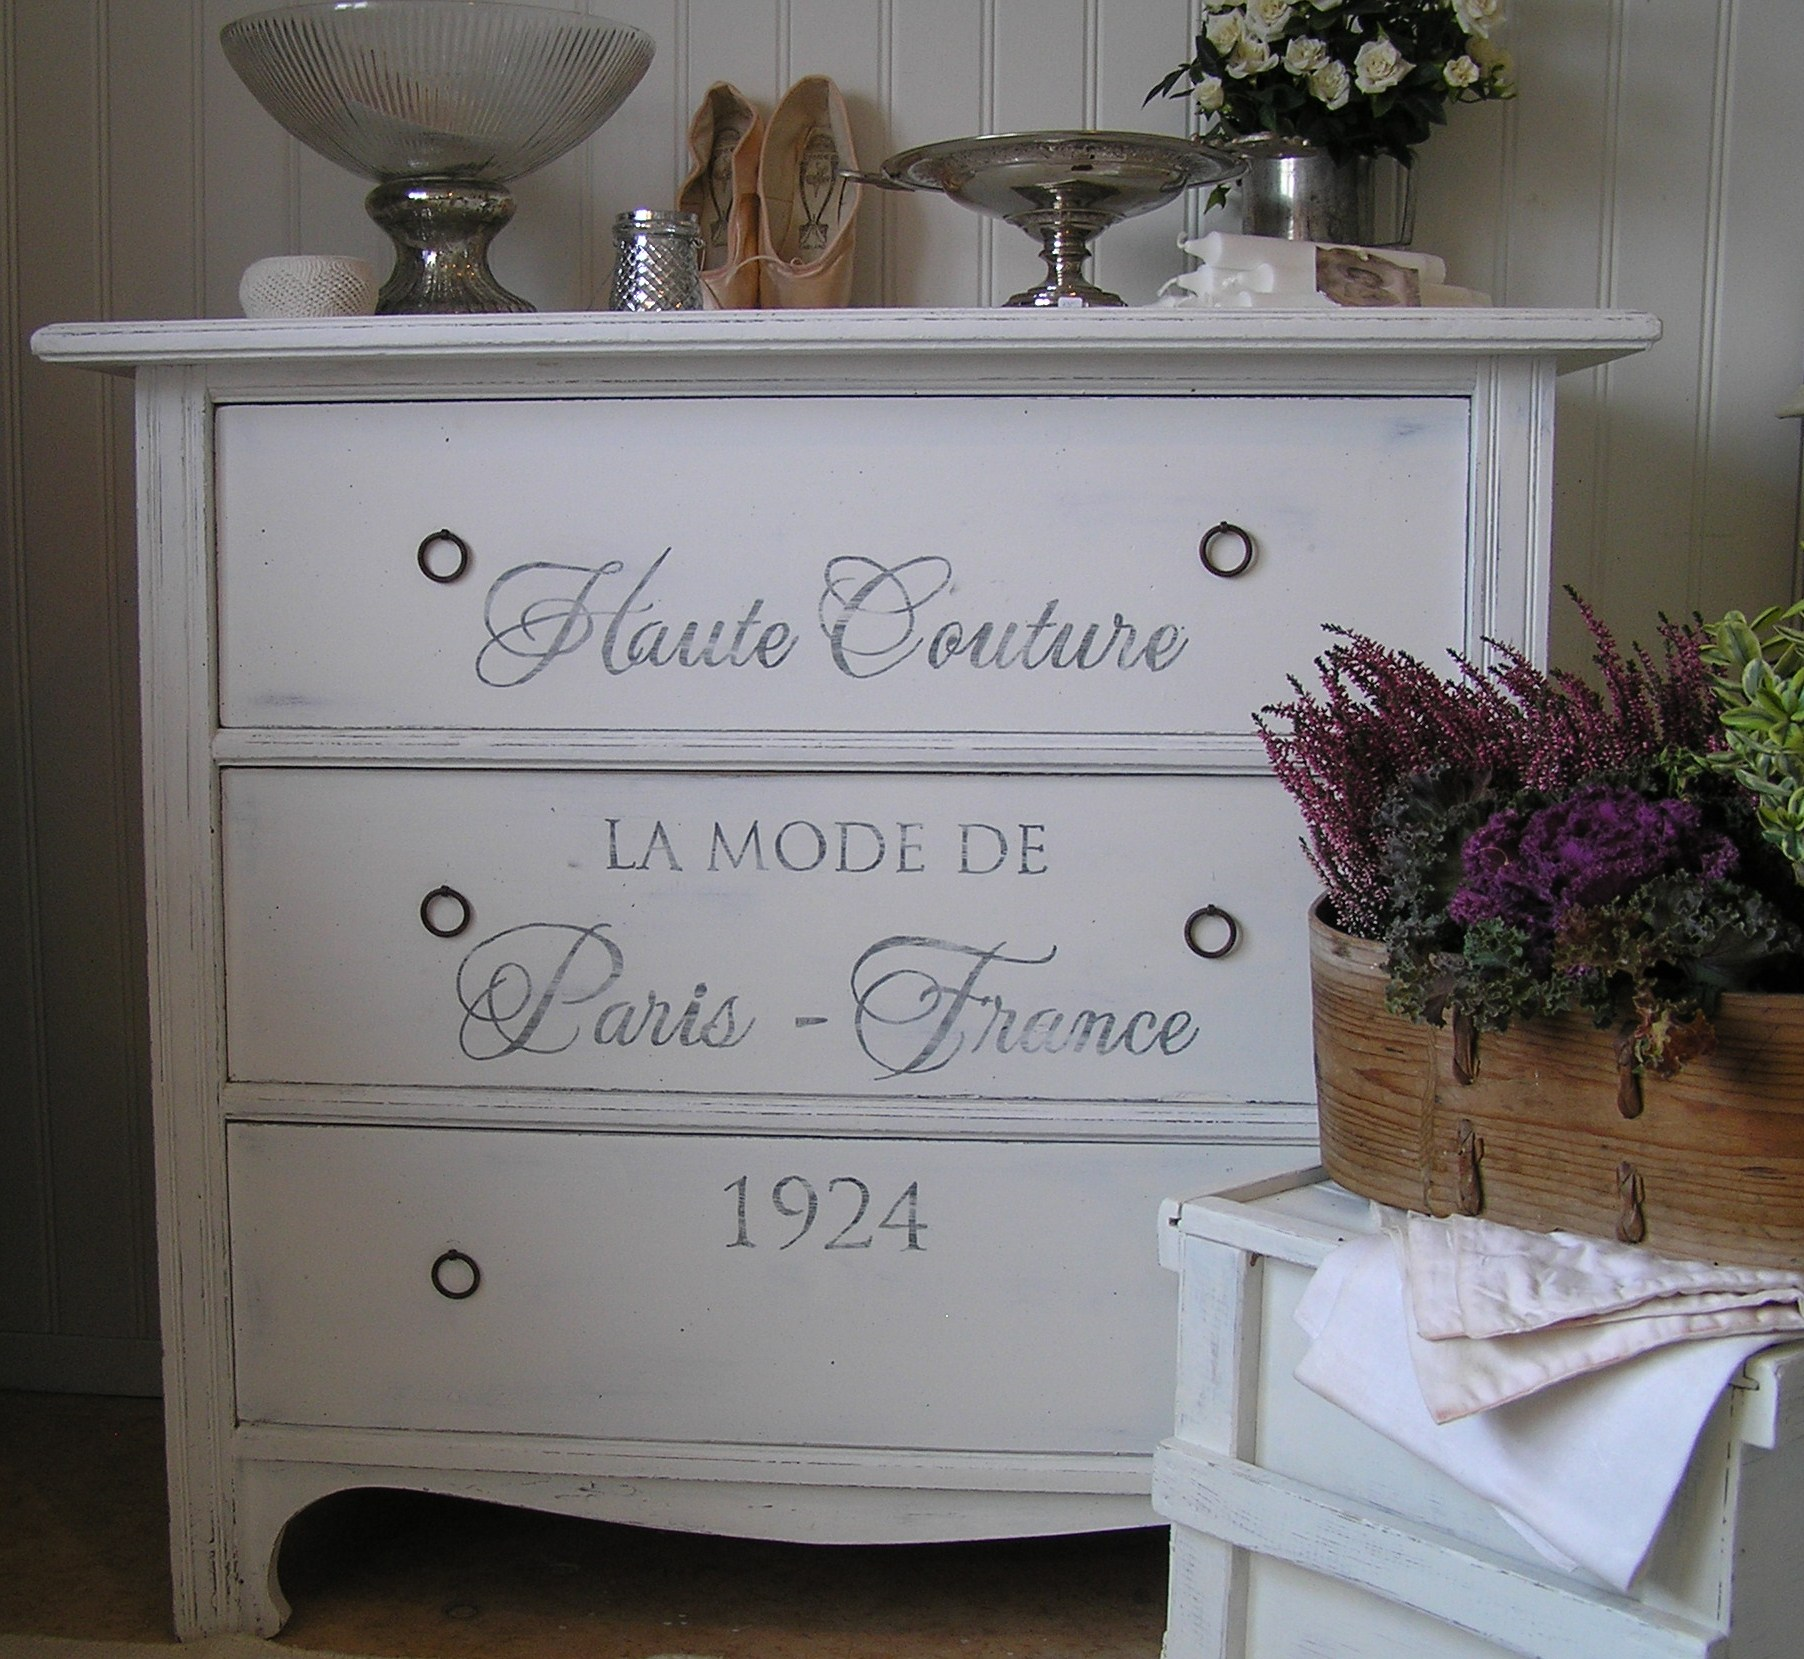 Himlarum - Shabby chic byr? med text Haute Couture